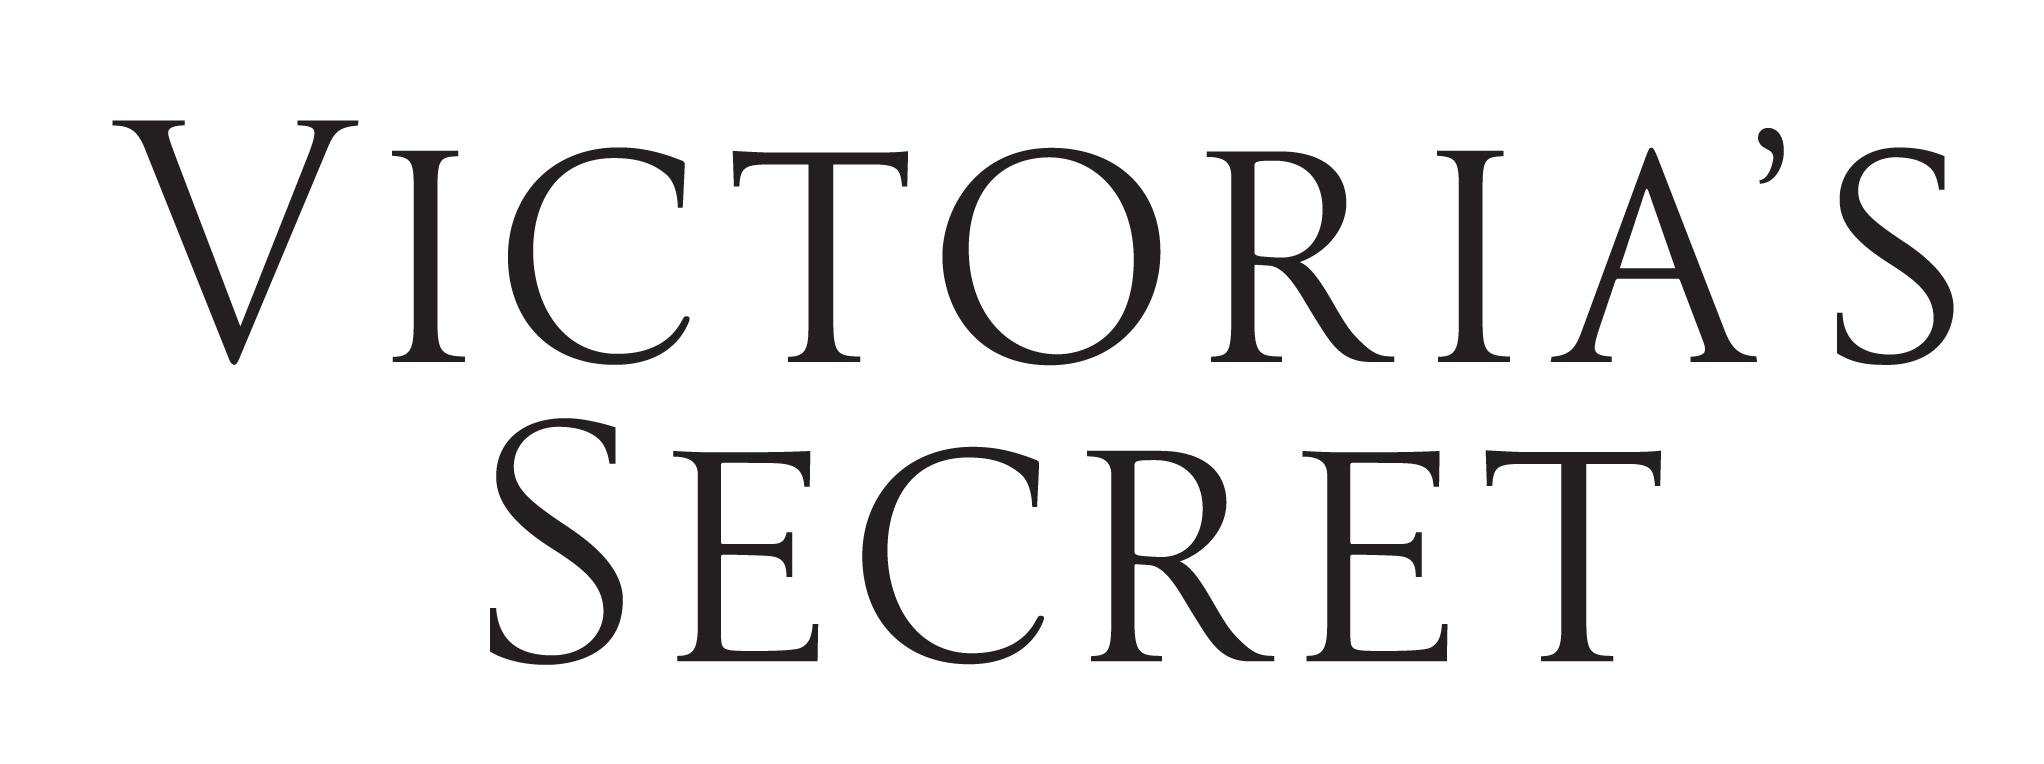 Victoria's Secret Up to $50 Off Sitewide